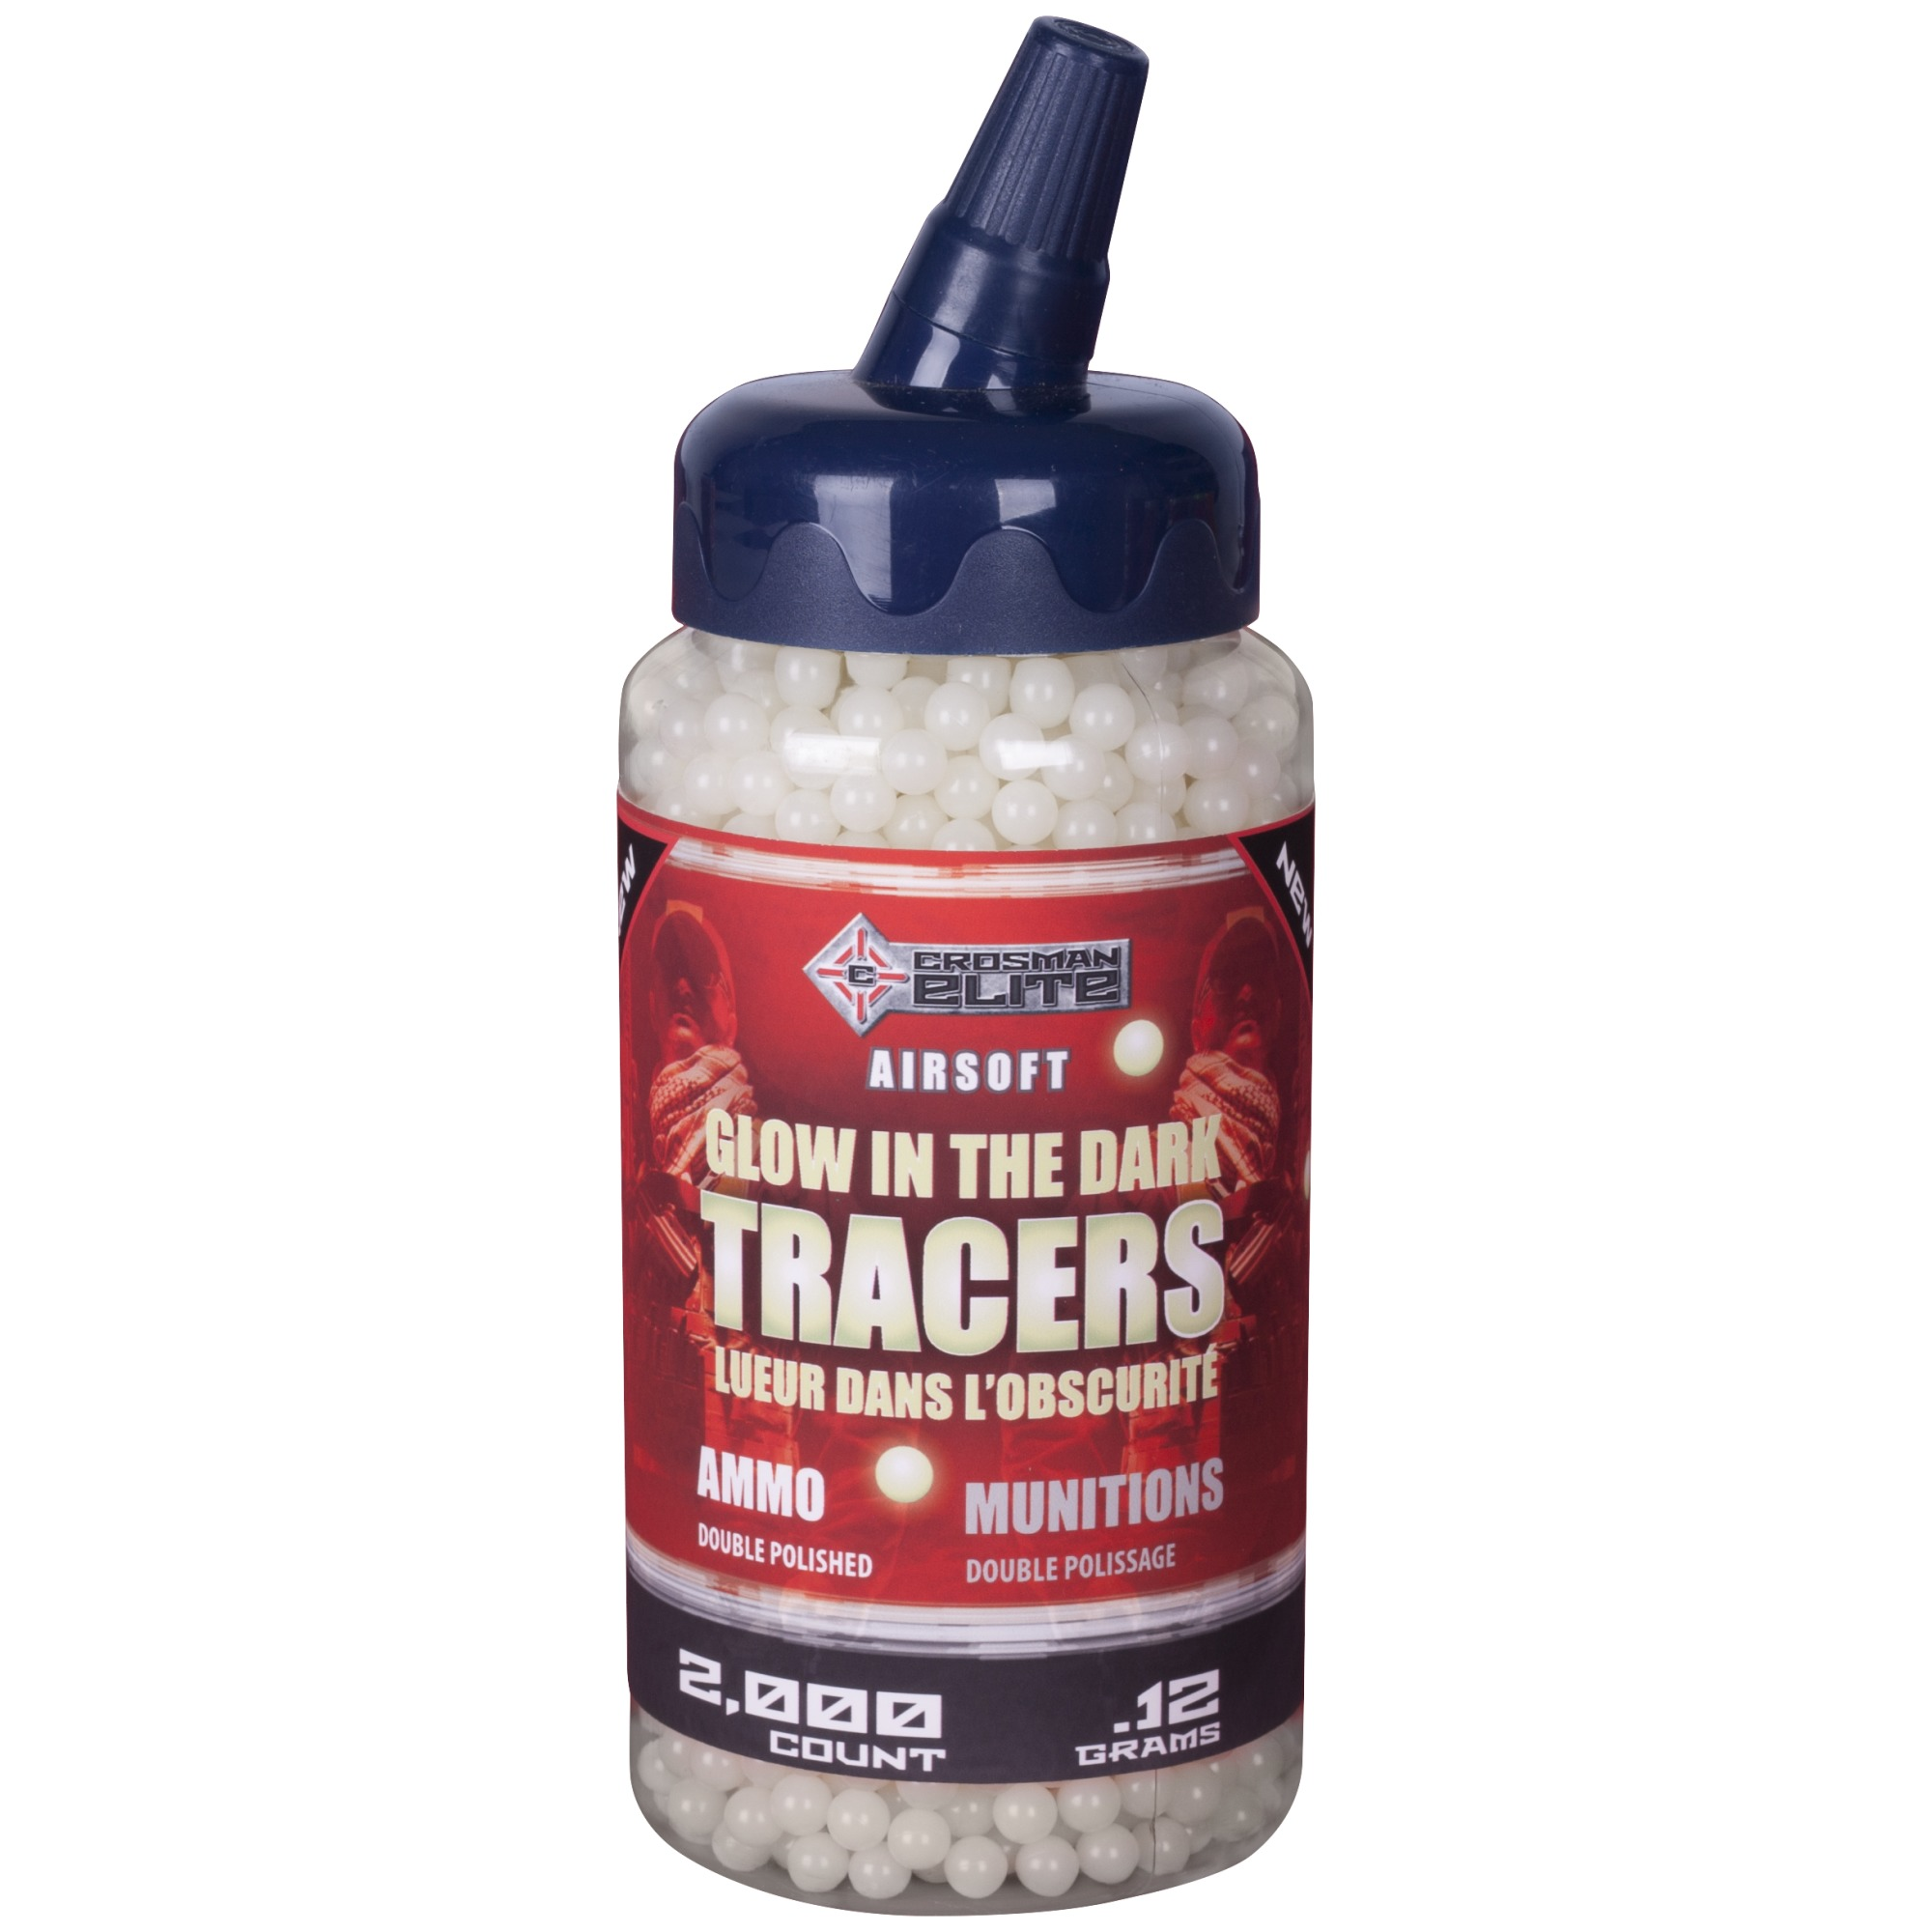 Crosman Airsoft Glow-in-the-Dark Tracers, 2,000 Ct.